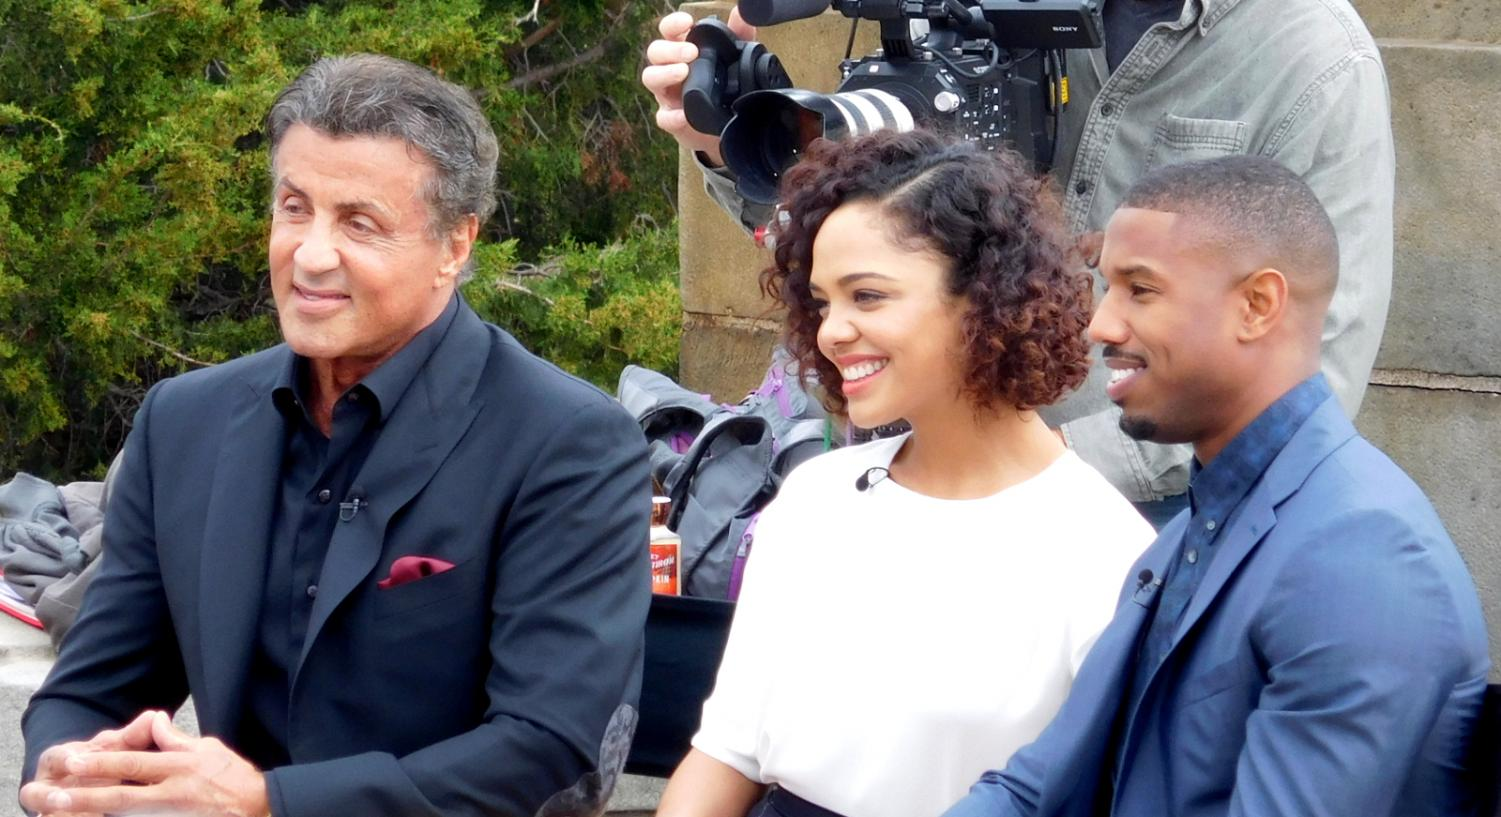 Michael B. Jordan, who plays Adonis Creed poses with fellow actors Tessa Thompson and Sylvester Stallone.